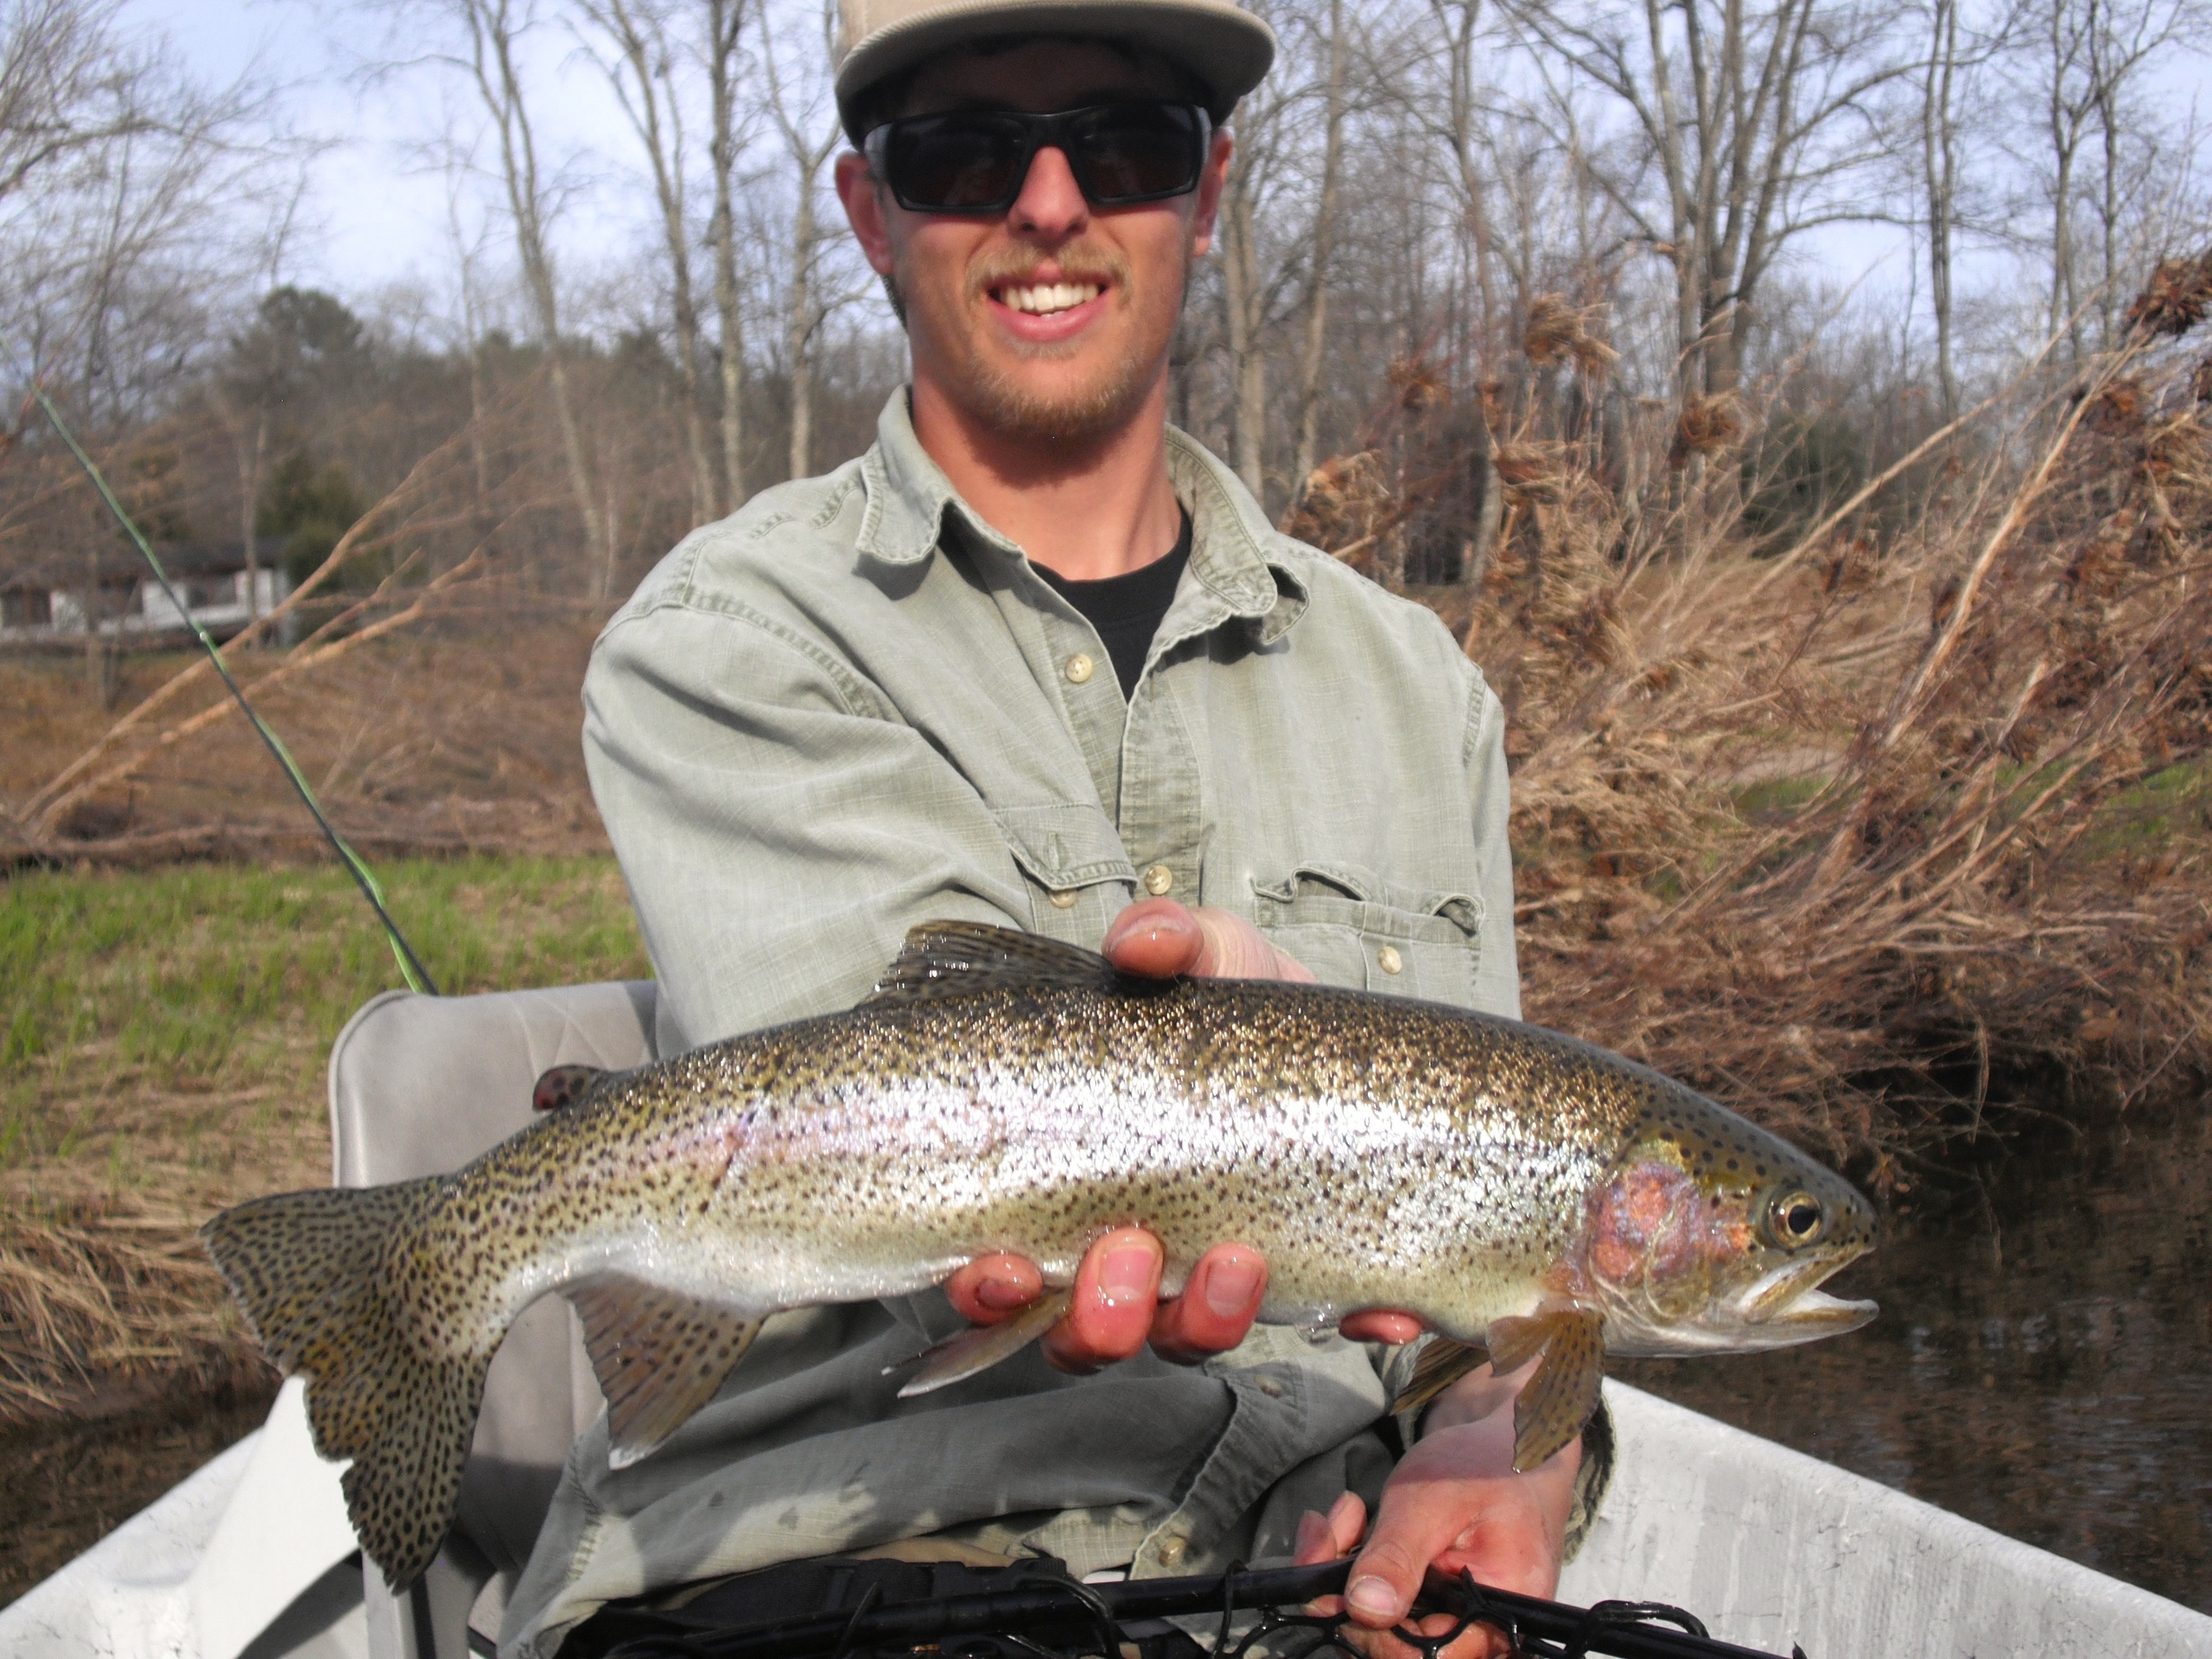 Fly fishing the Delaware river for Rainbow trout